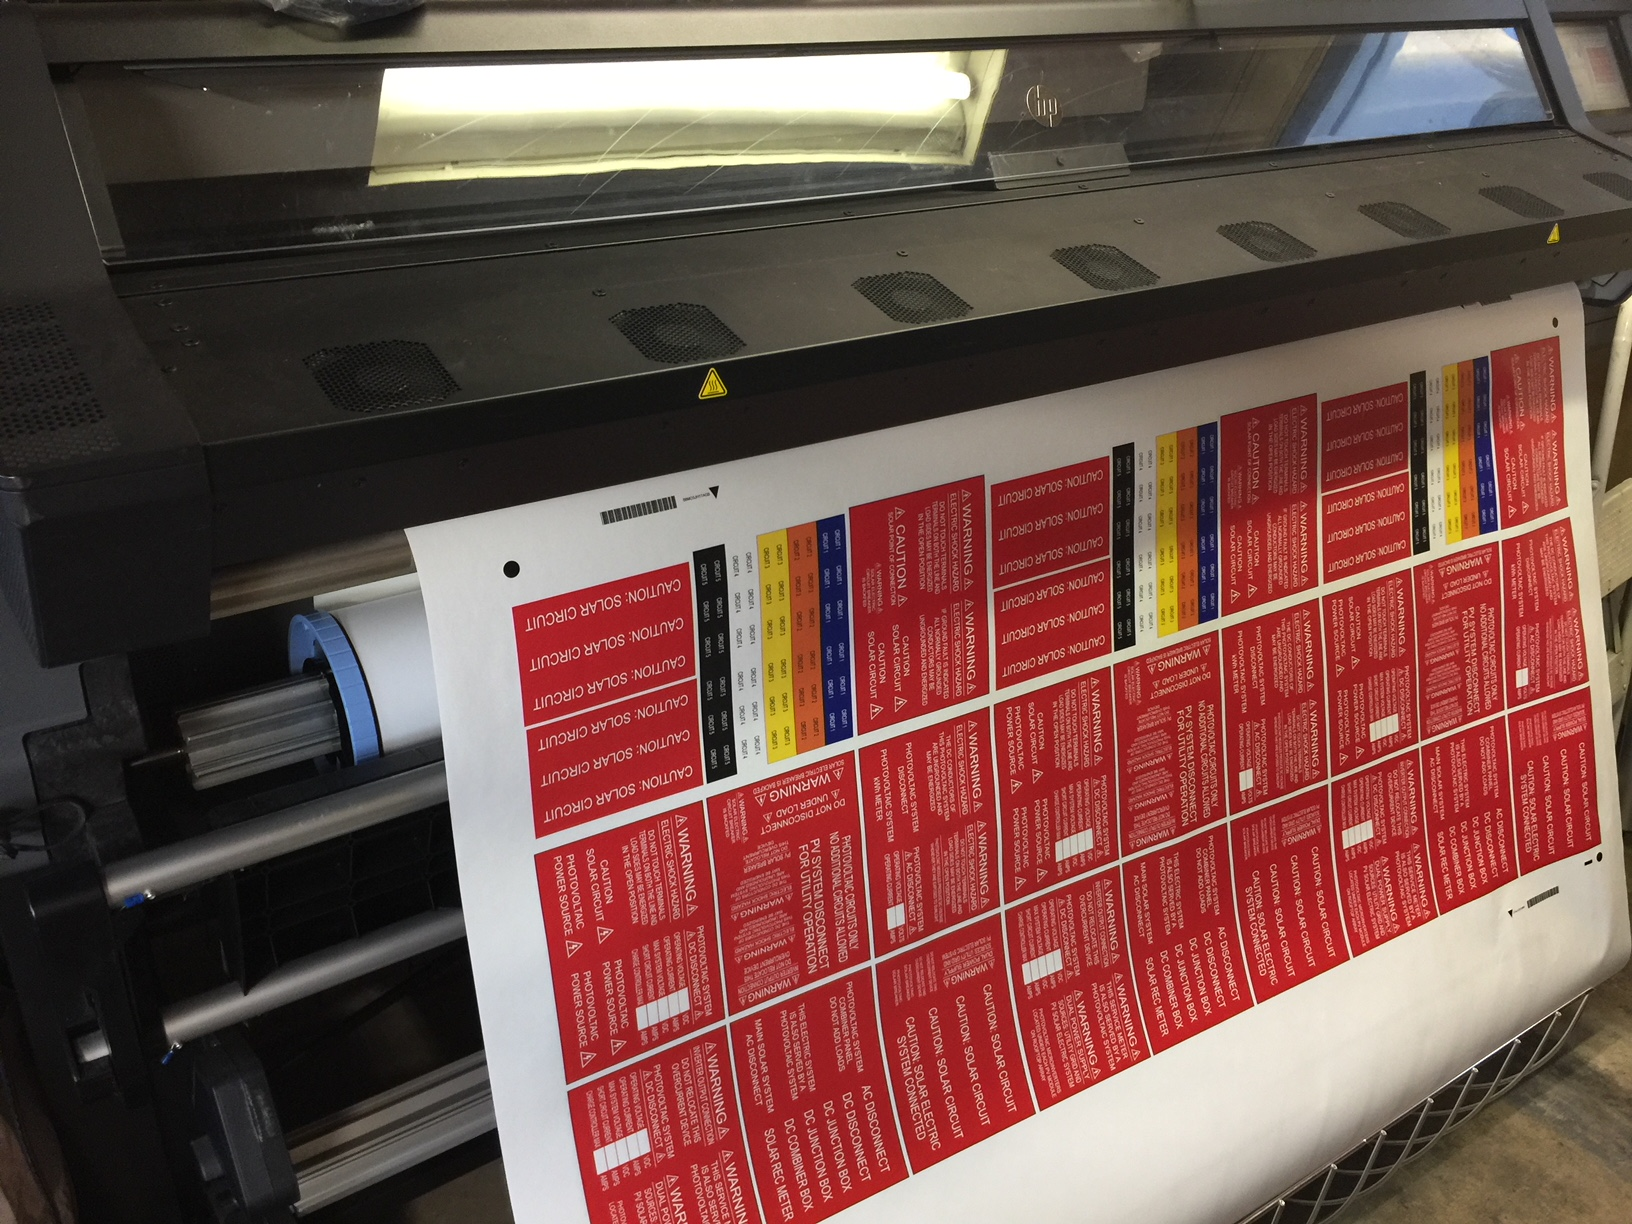 Solar install labels and signage